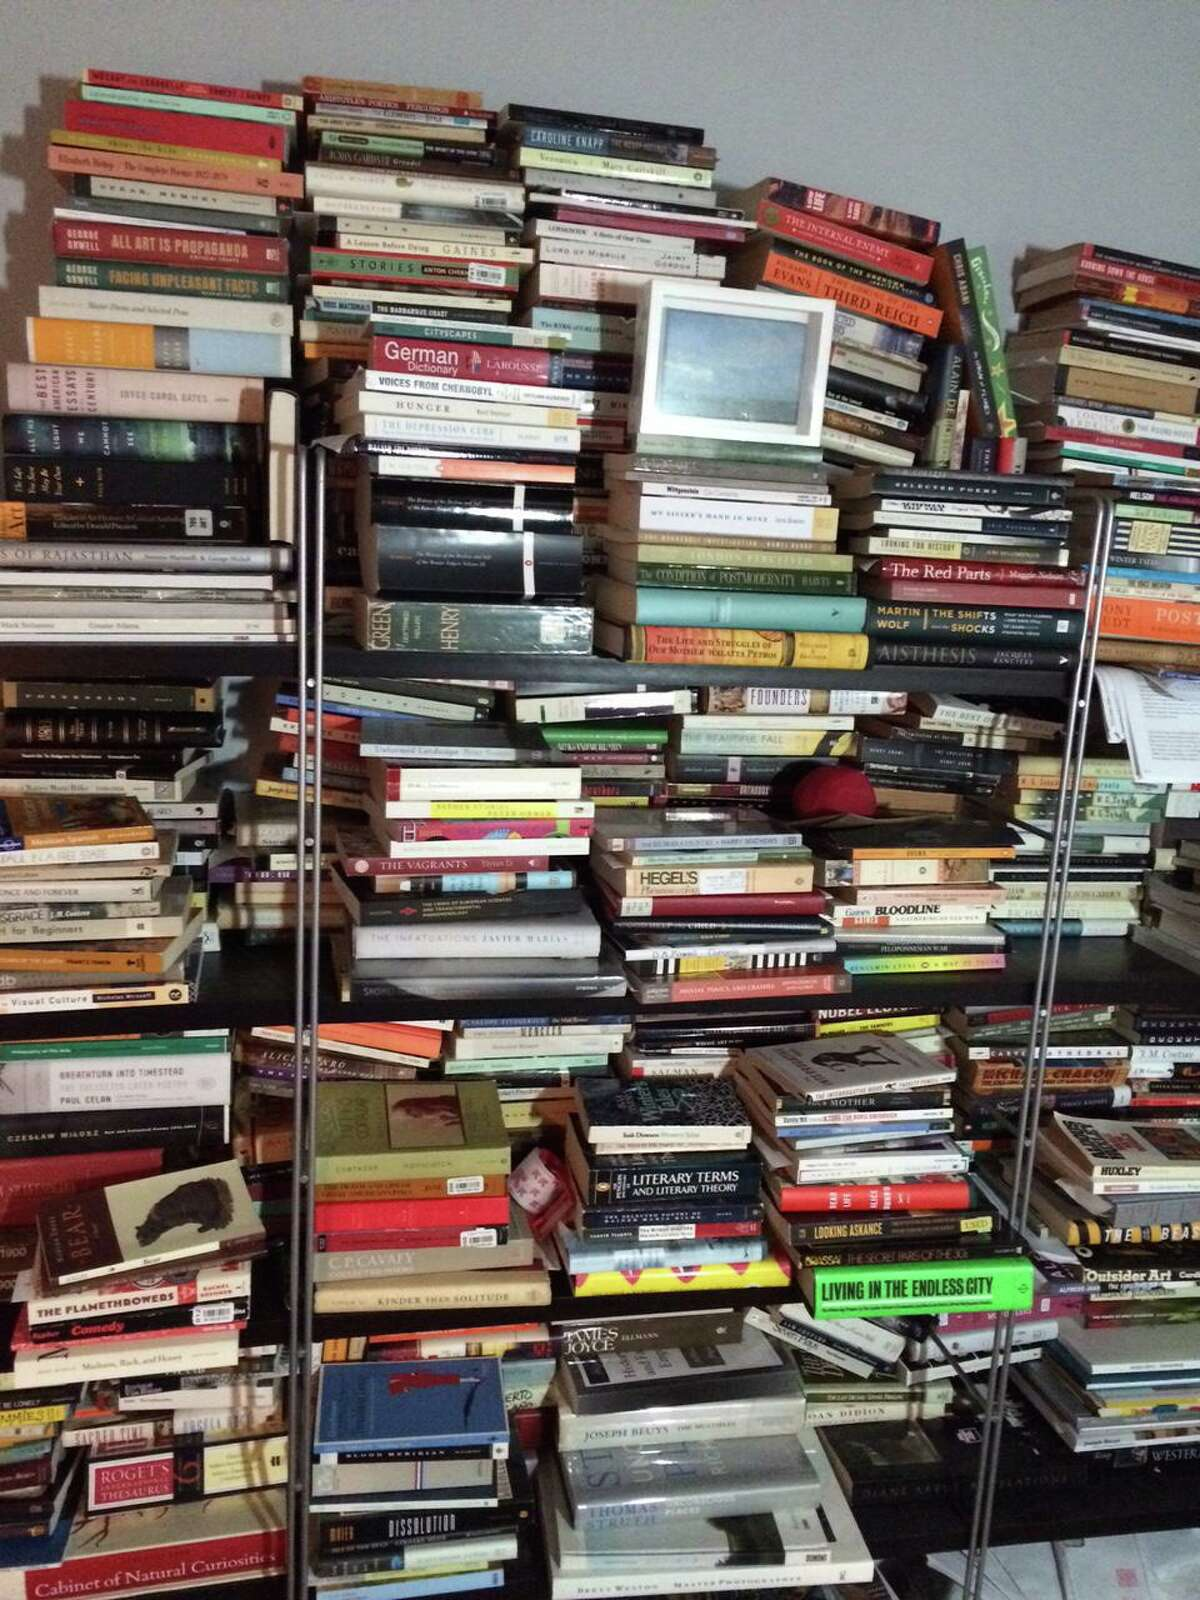 Shelves filled with books are much harder to manage than a Kindle Fire. De-clutter!